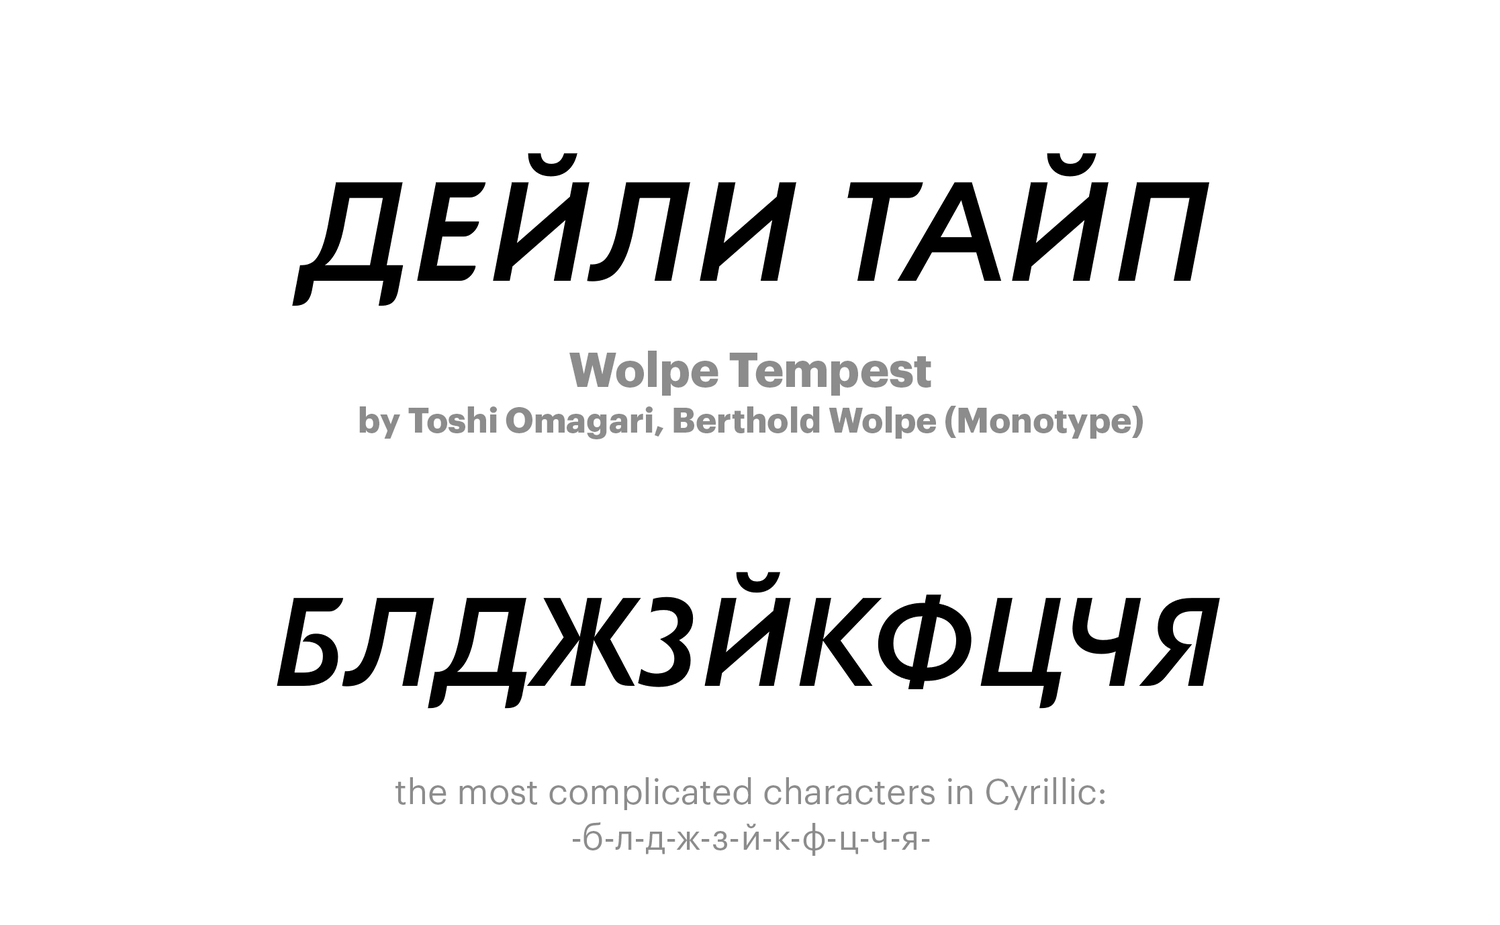 Wolpe-Tempest-by-Toshi-Omagari,-Berthold-Wolpe-(Monotype)